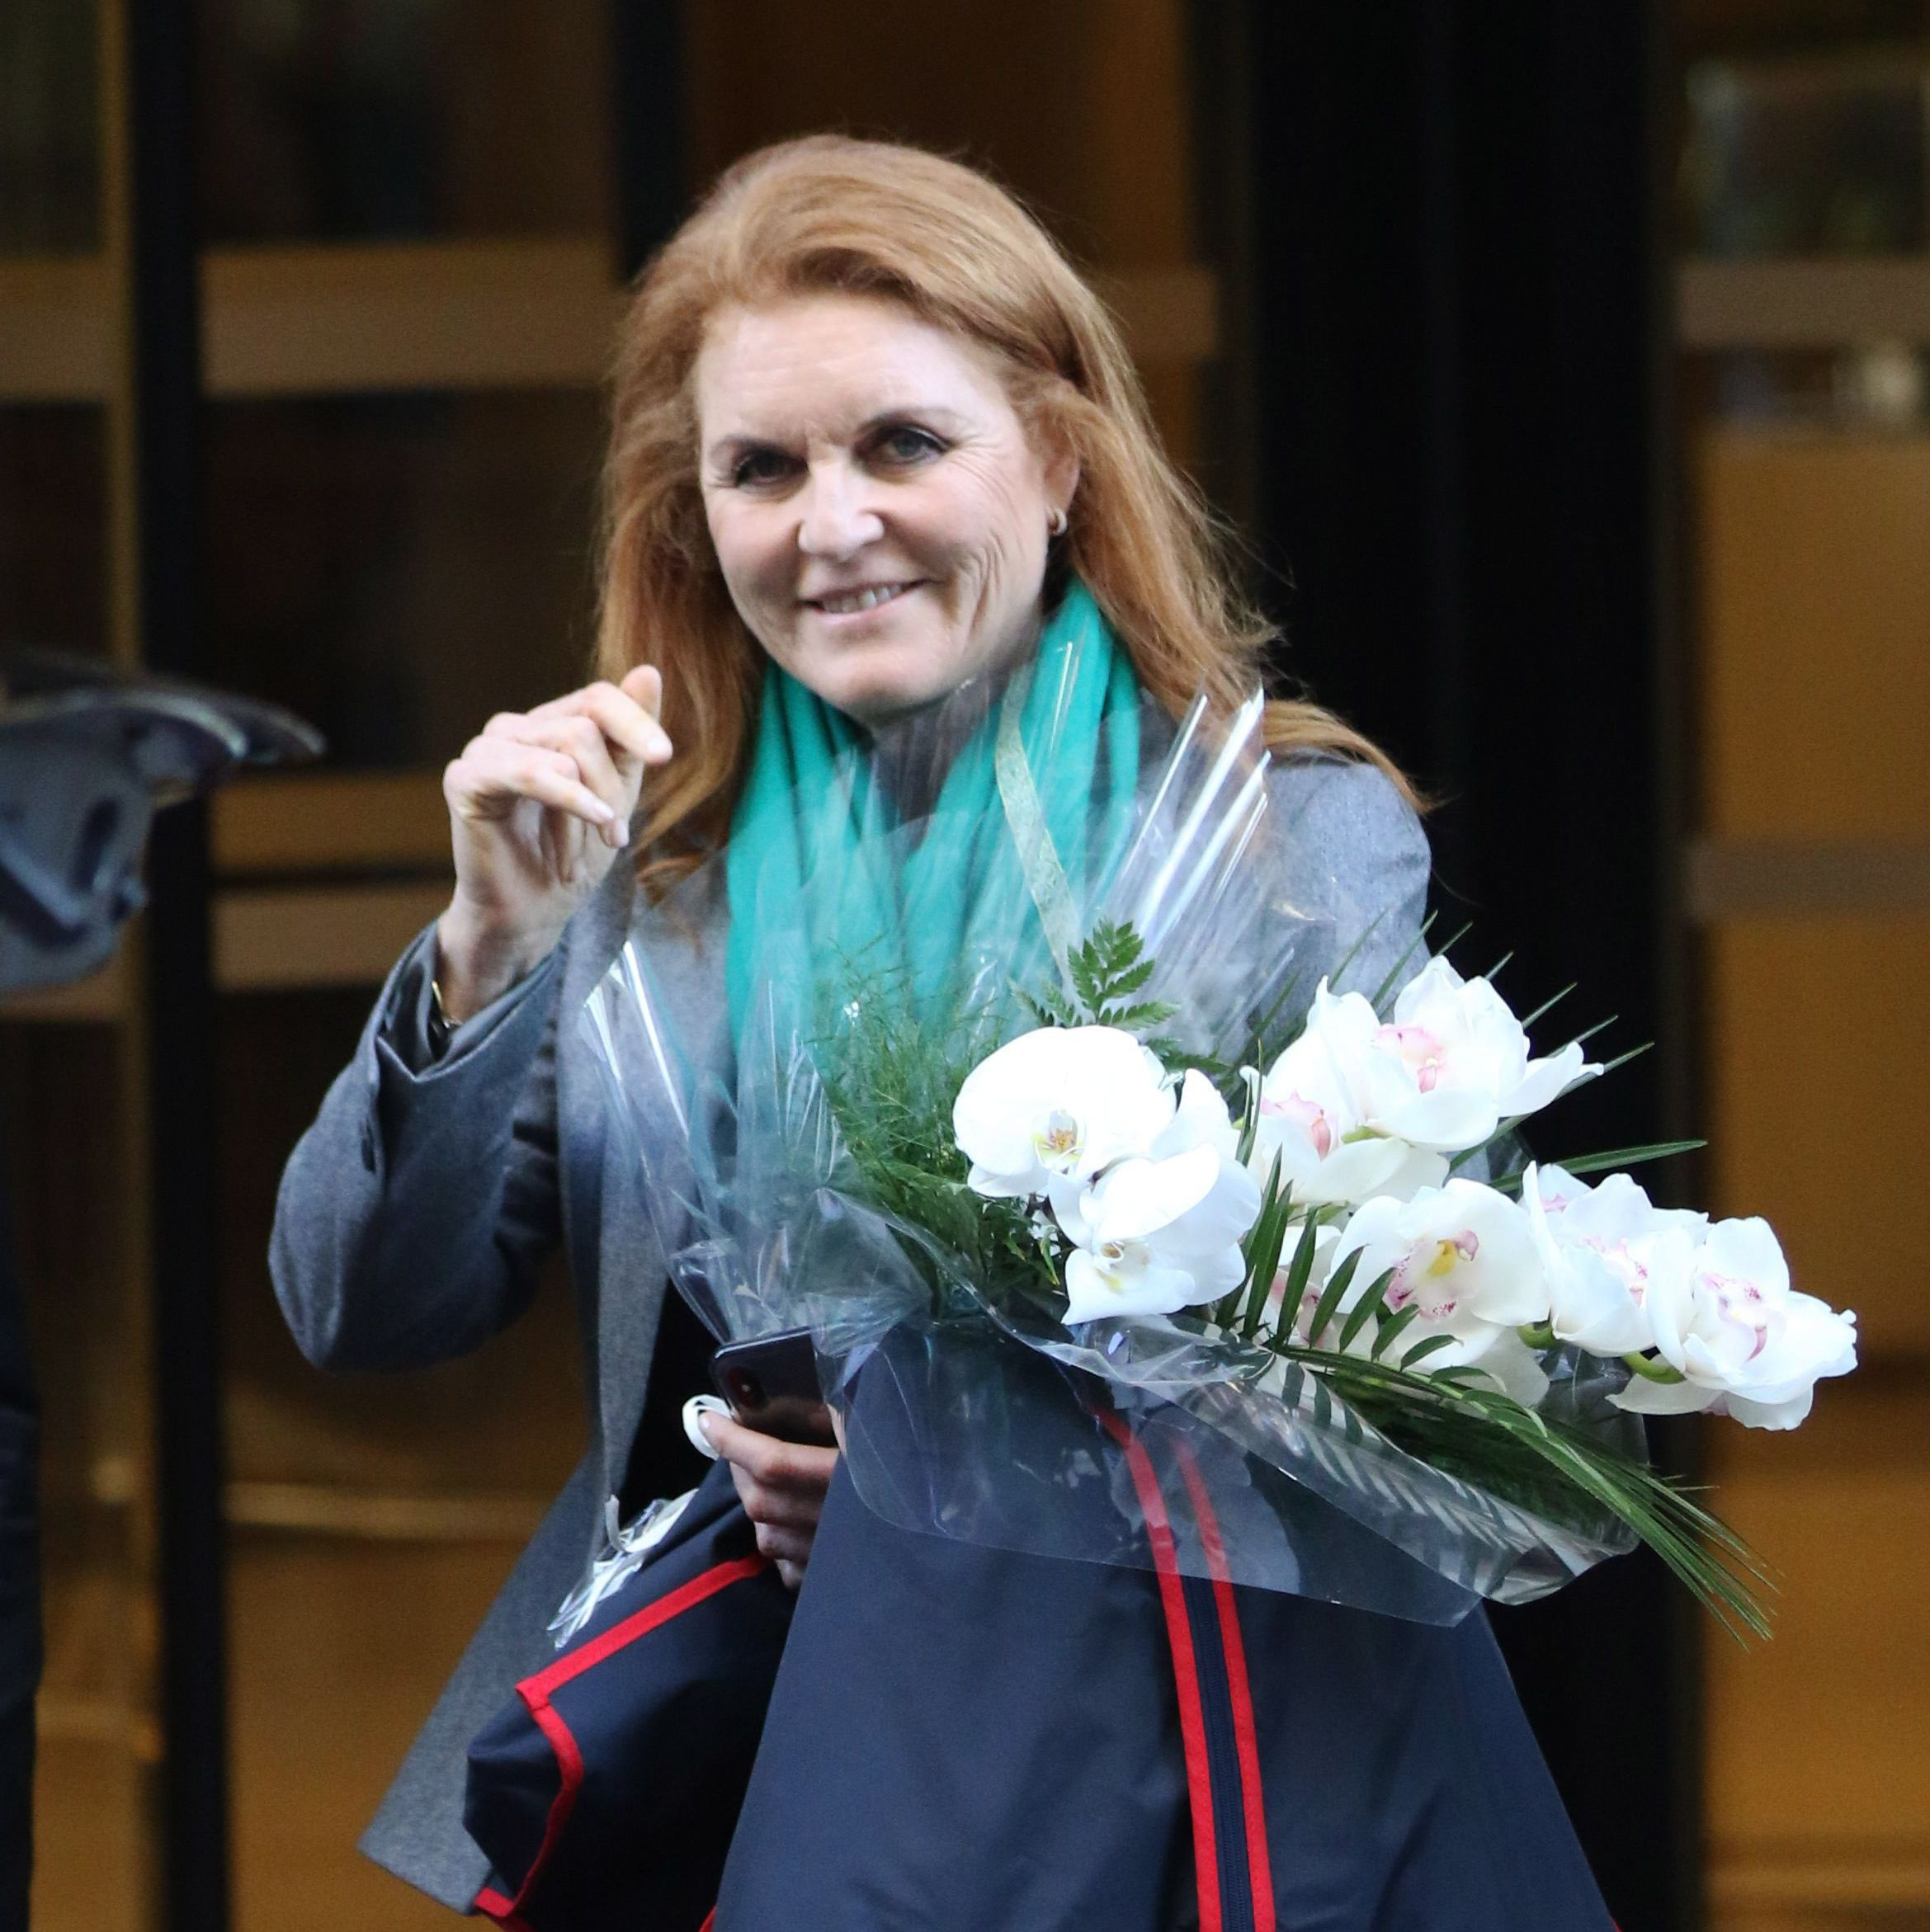 'Proud' Sarah Ferguson posts adorable message about ex-husband, Prince Andrew